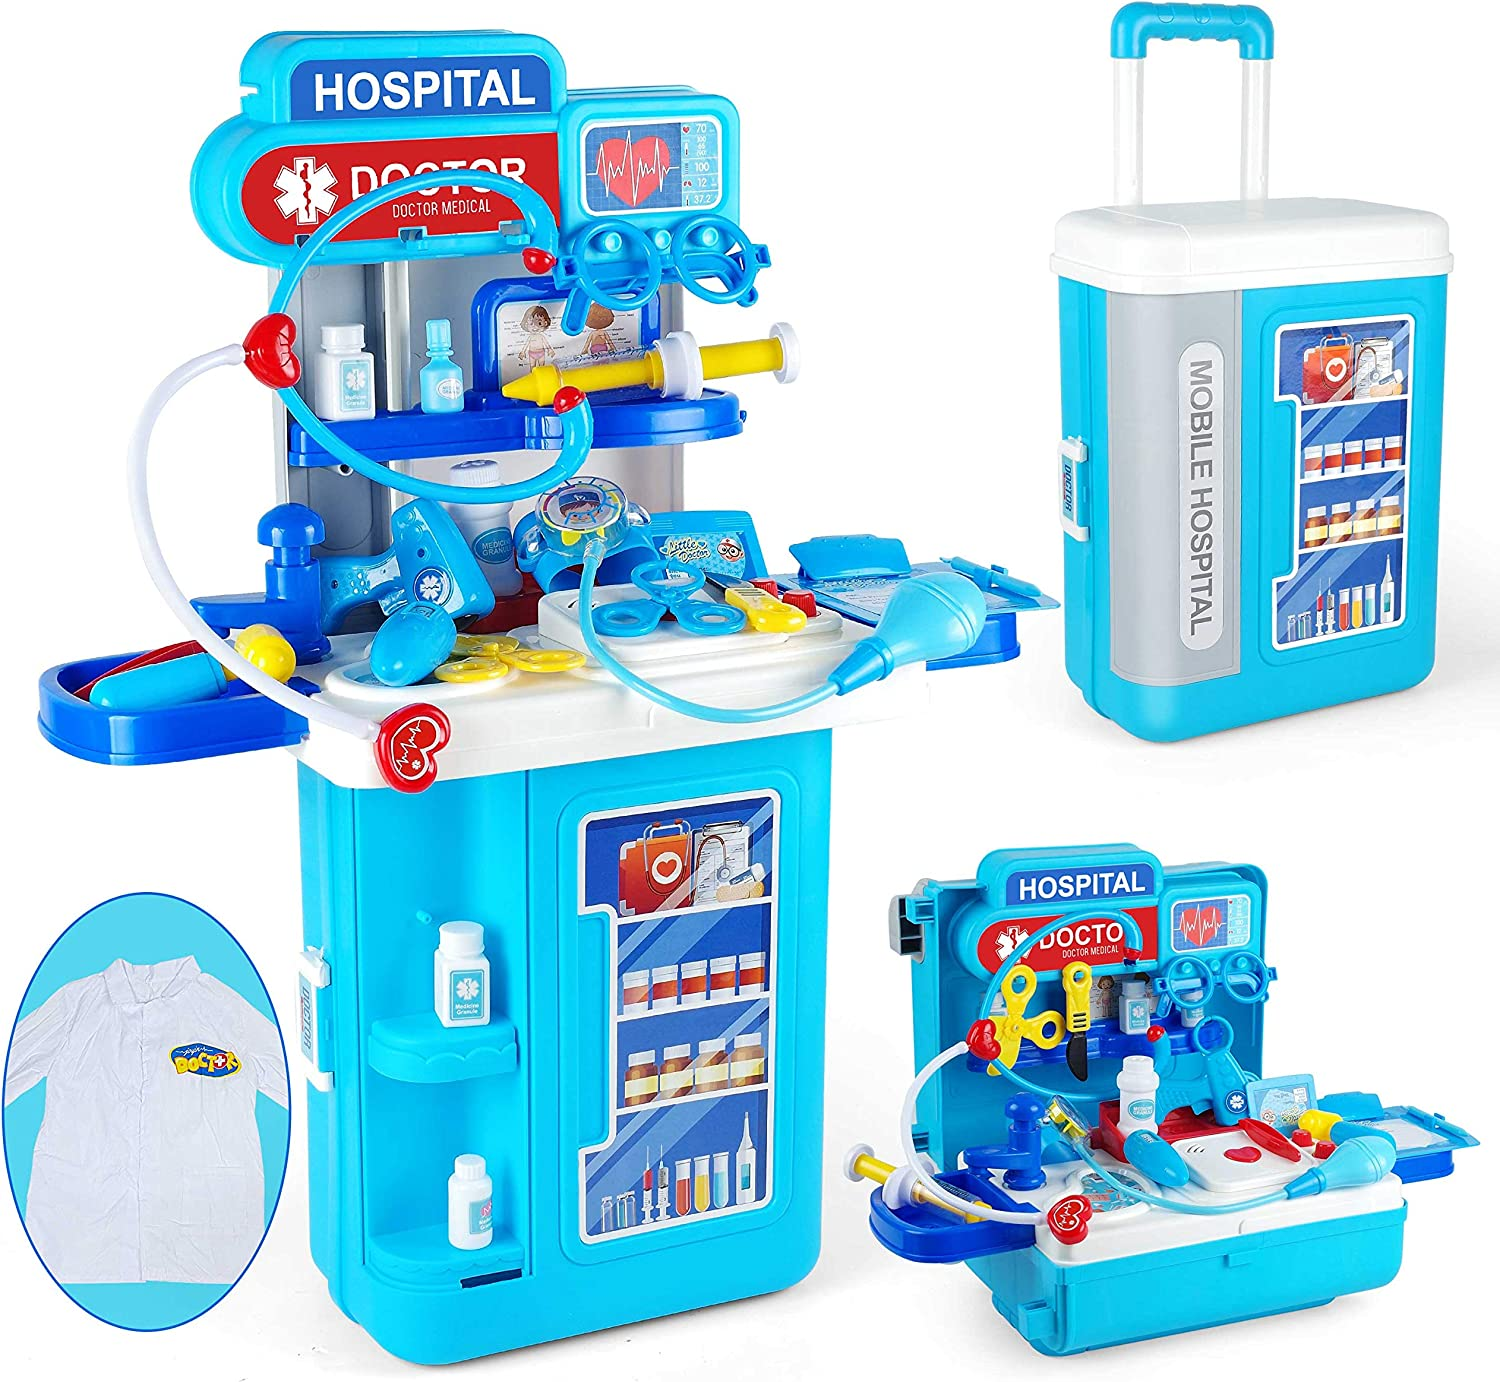 JOYIN 4 in 1 Doctor Medical Toy Pretend Play Set Including Electronic Stethoscope and Doctor Coat, Doctor Equipment Roleplay